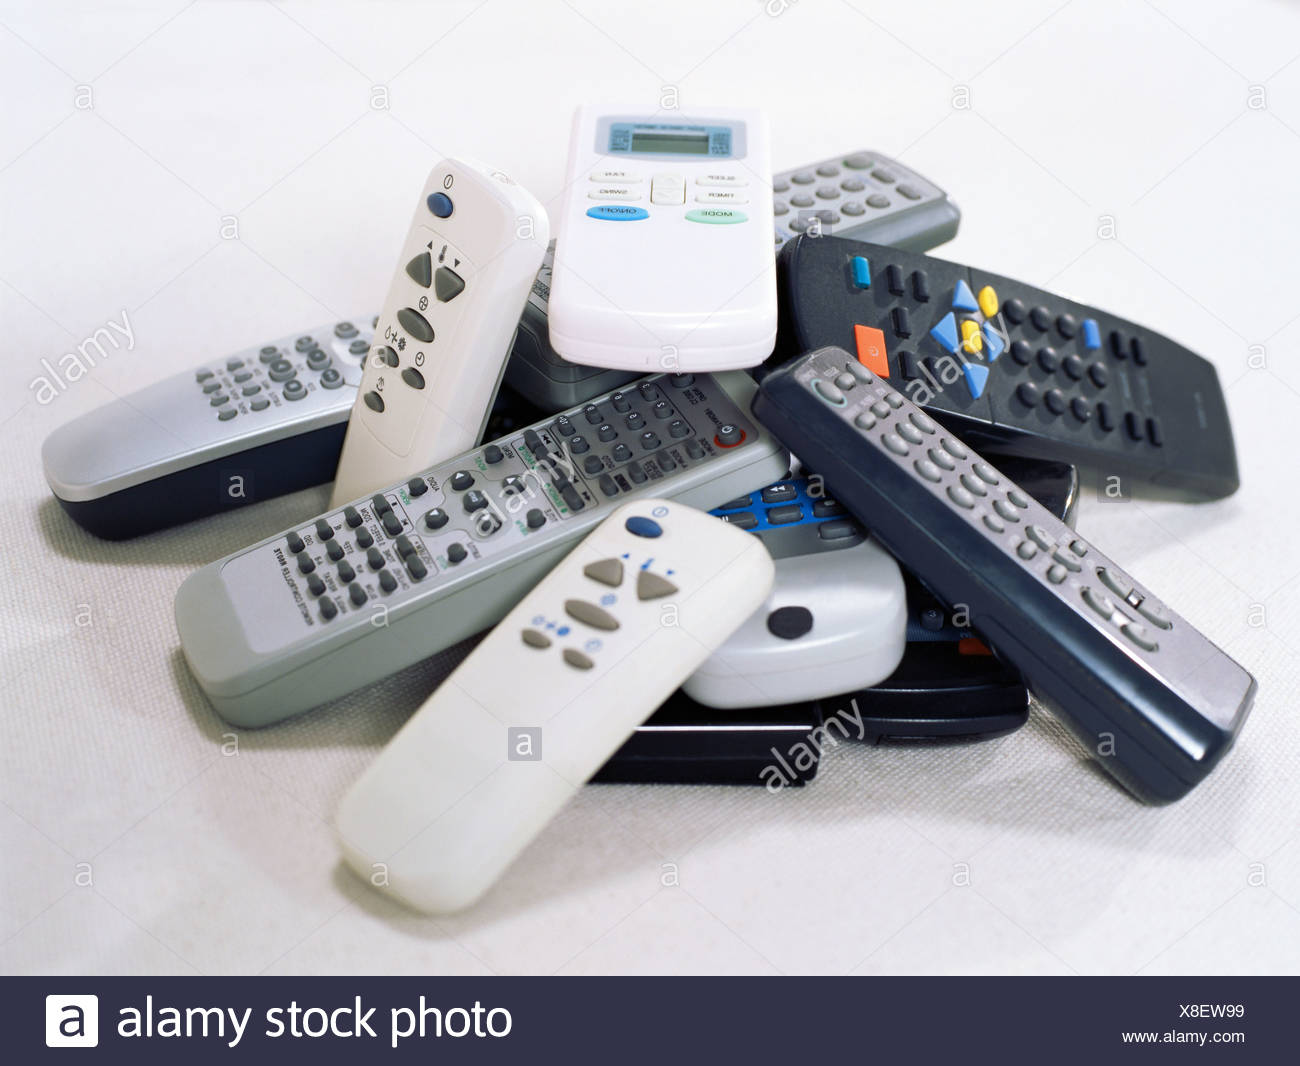 Stack of remote controls - Stock Image